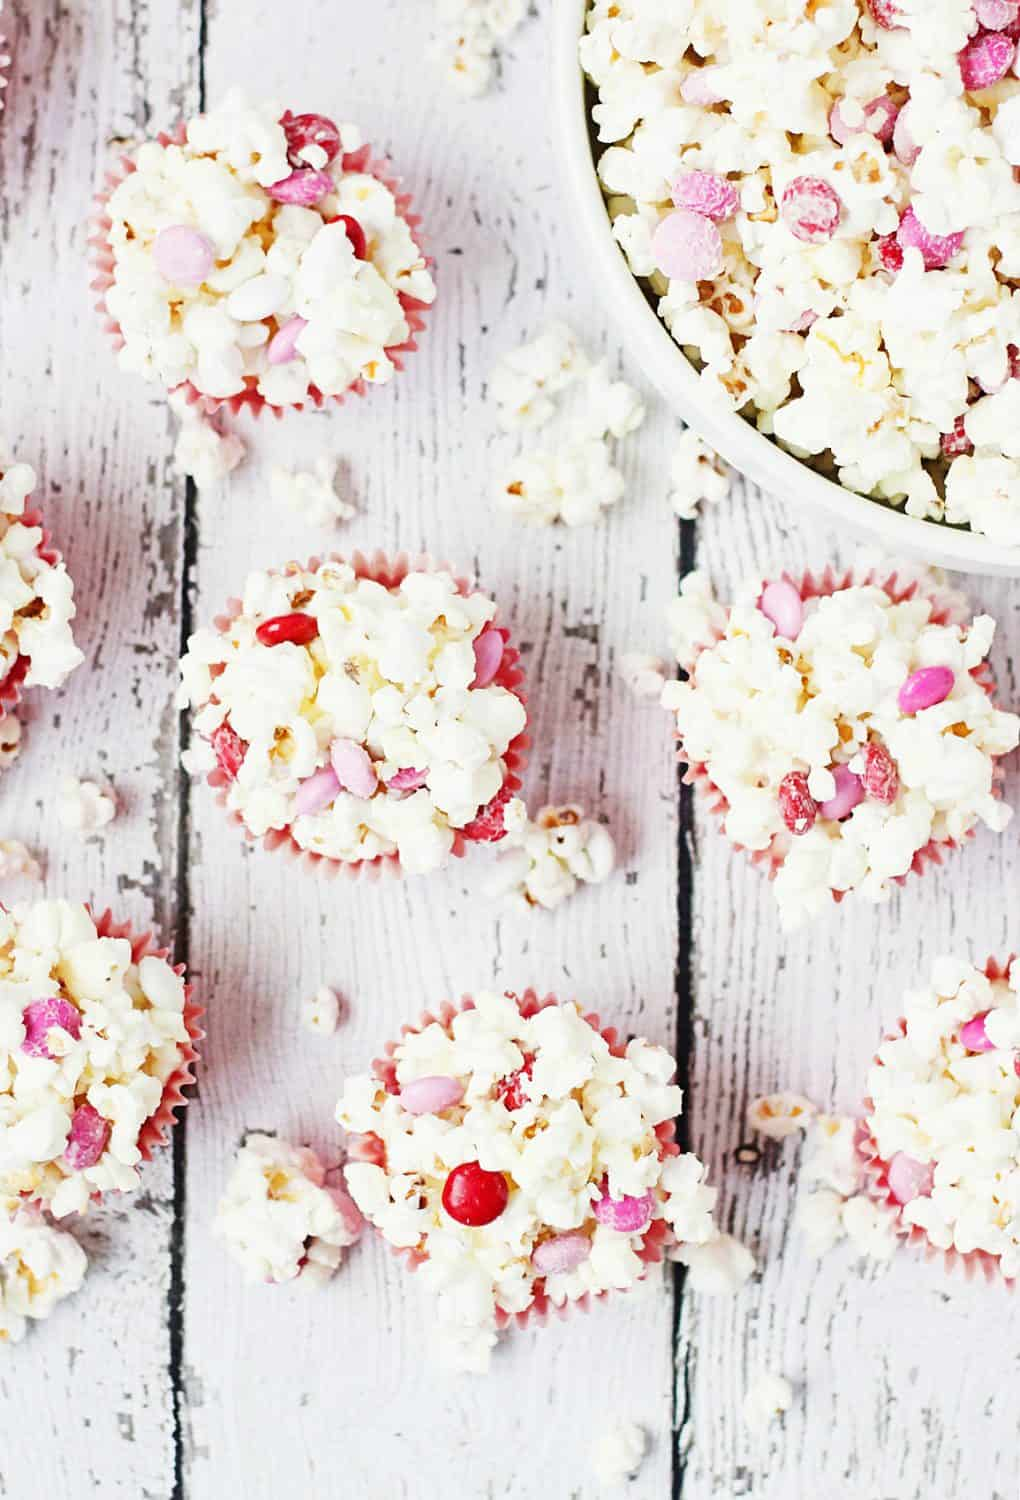 3-Ingredient Valentine's Popcorn Balls -- Valentine's popcorn balls are a super fun treat to serve at your Valentine's parties. With only three ingredients, they're super quick and easy to make! | halfscratched.com #valentinesday #recipe #popcorn